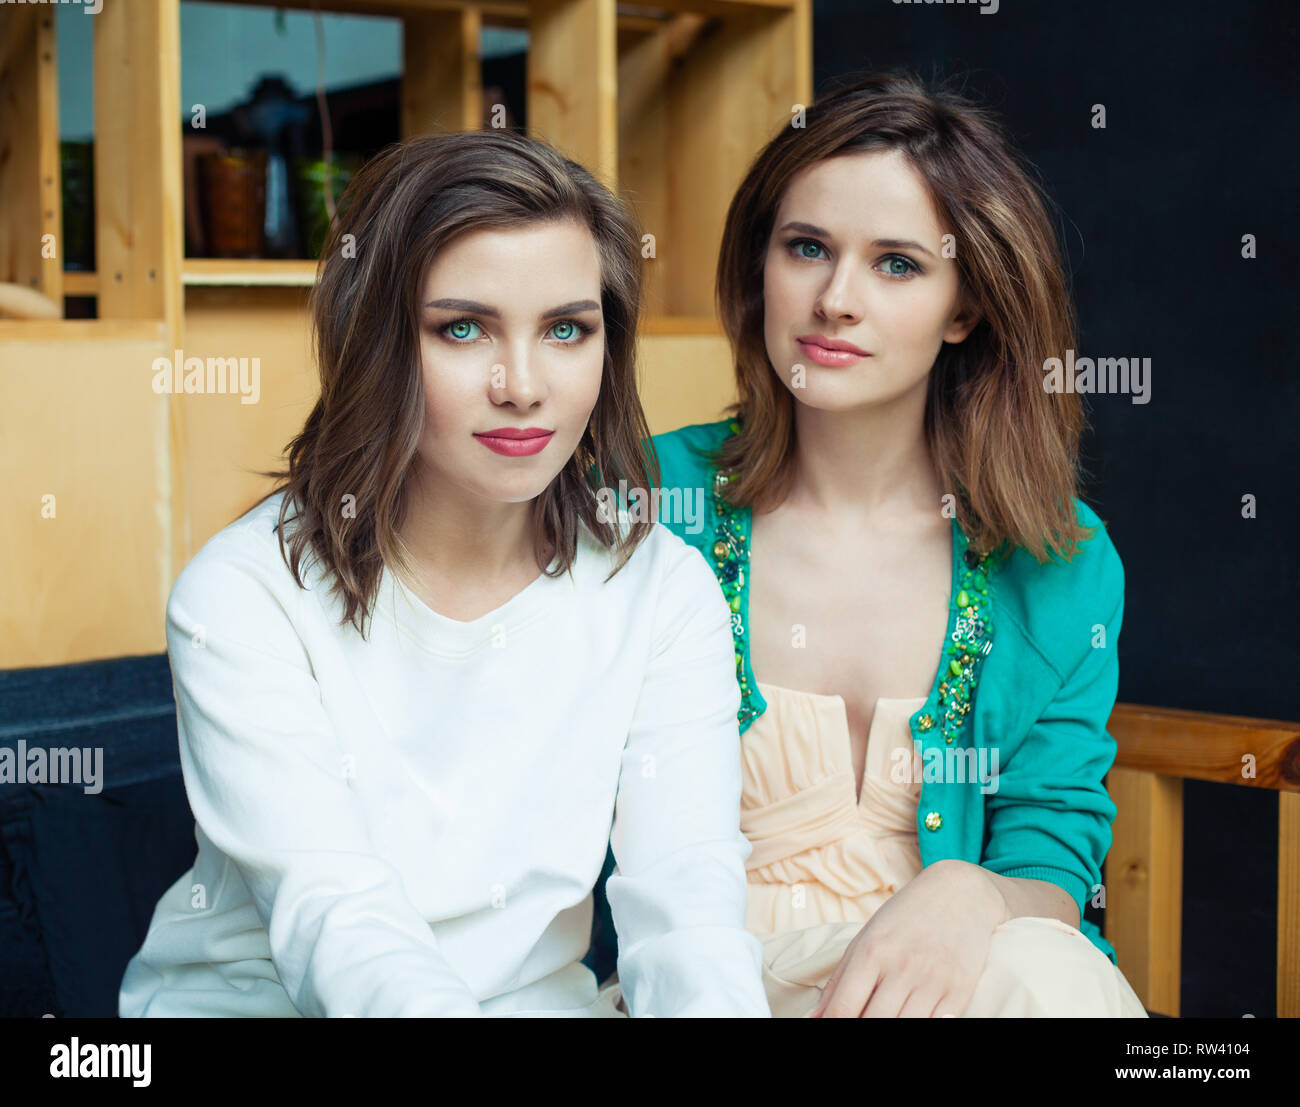 Young women in cafee, lifestyle portrait - Stock Image